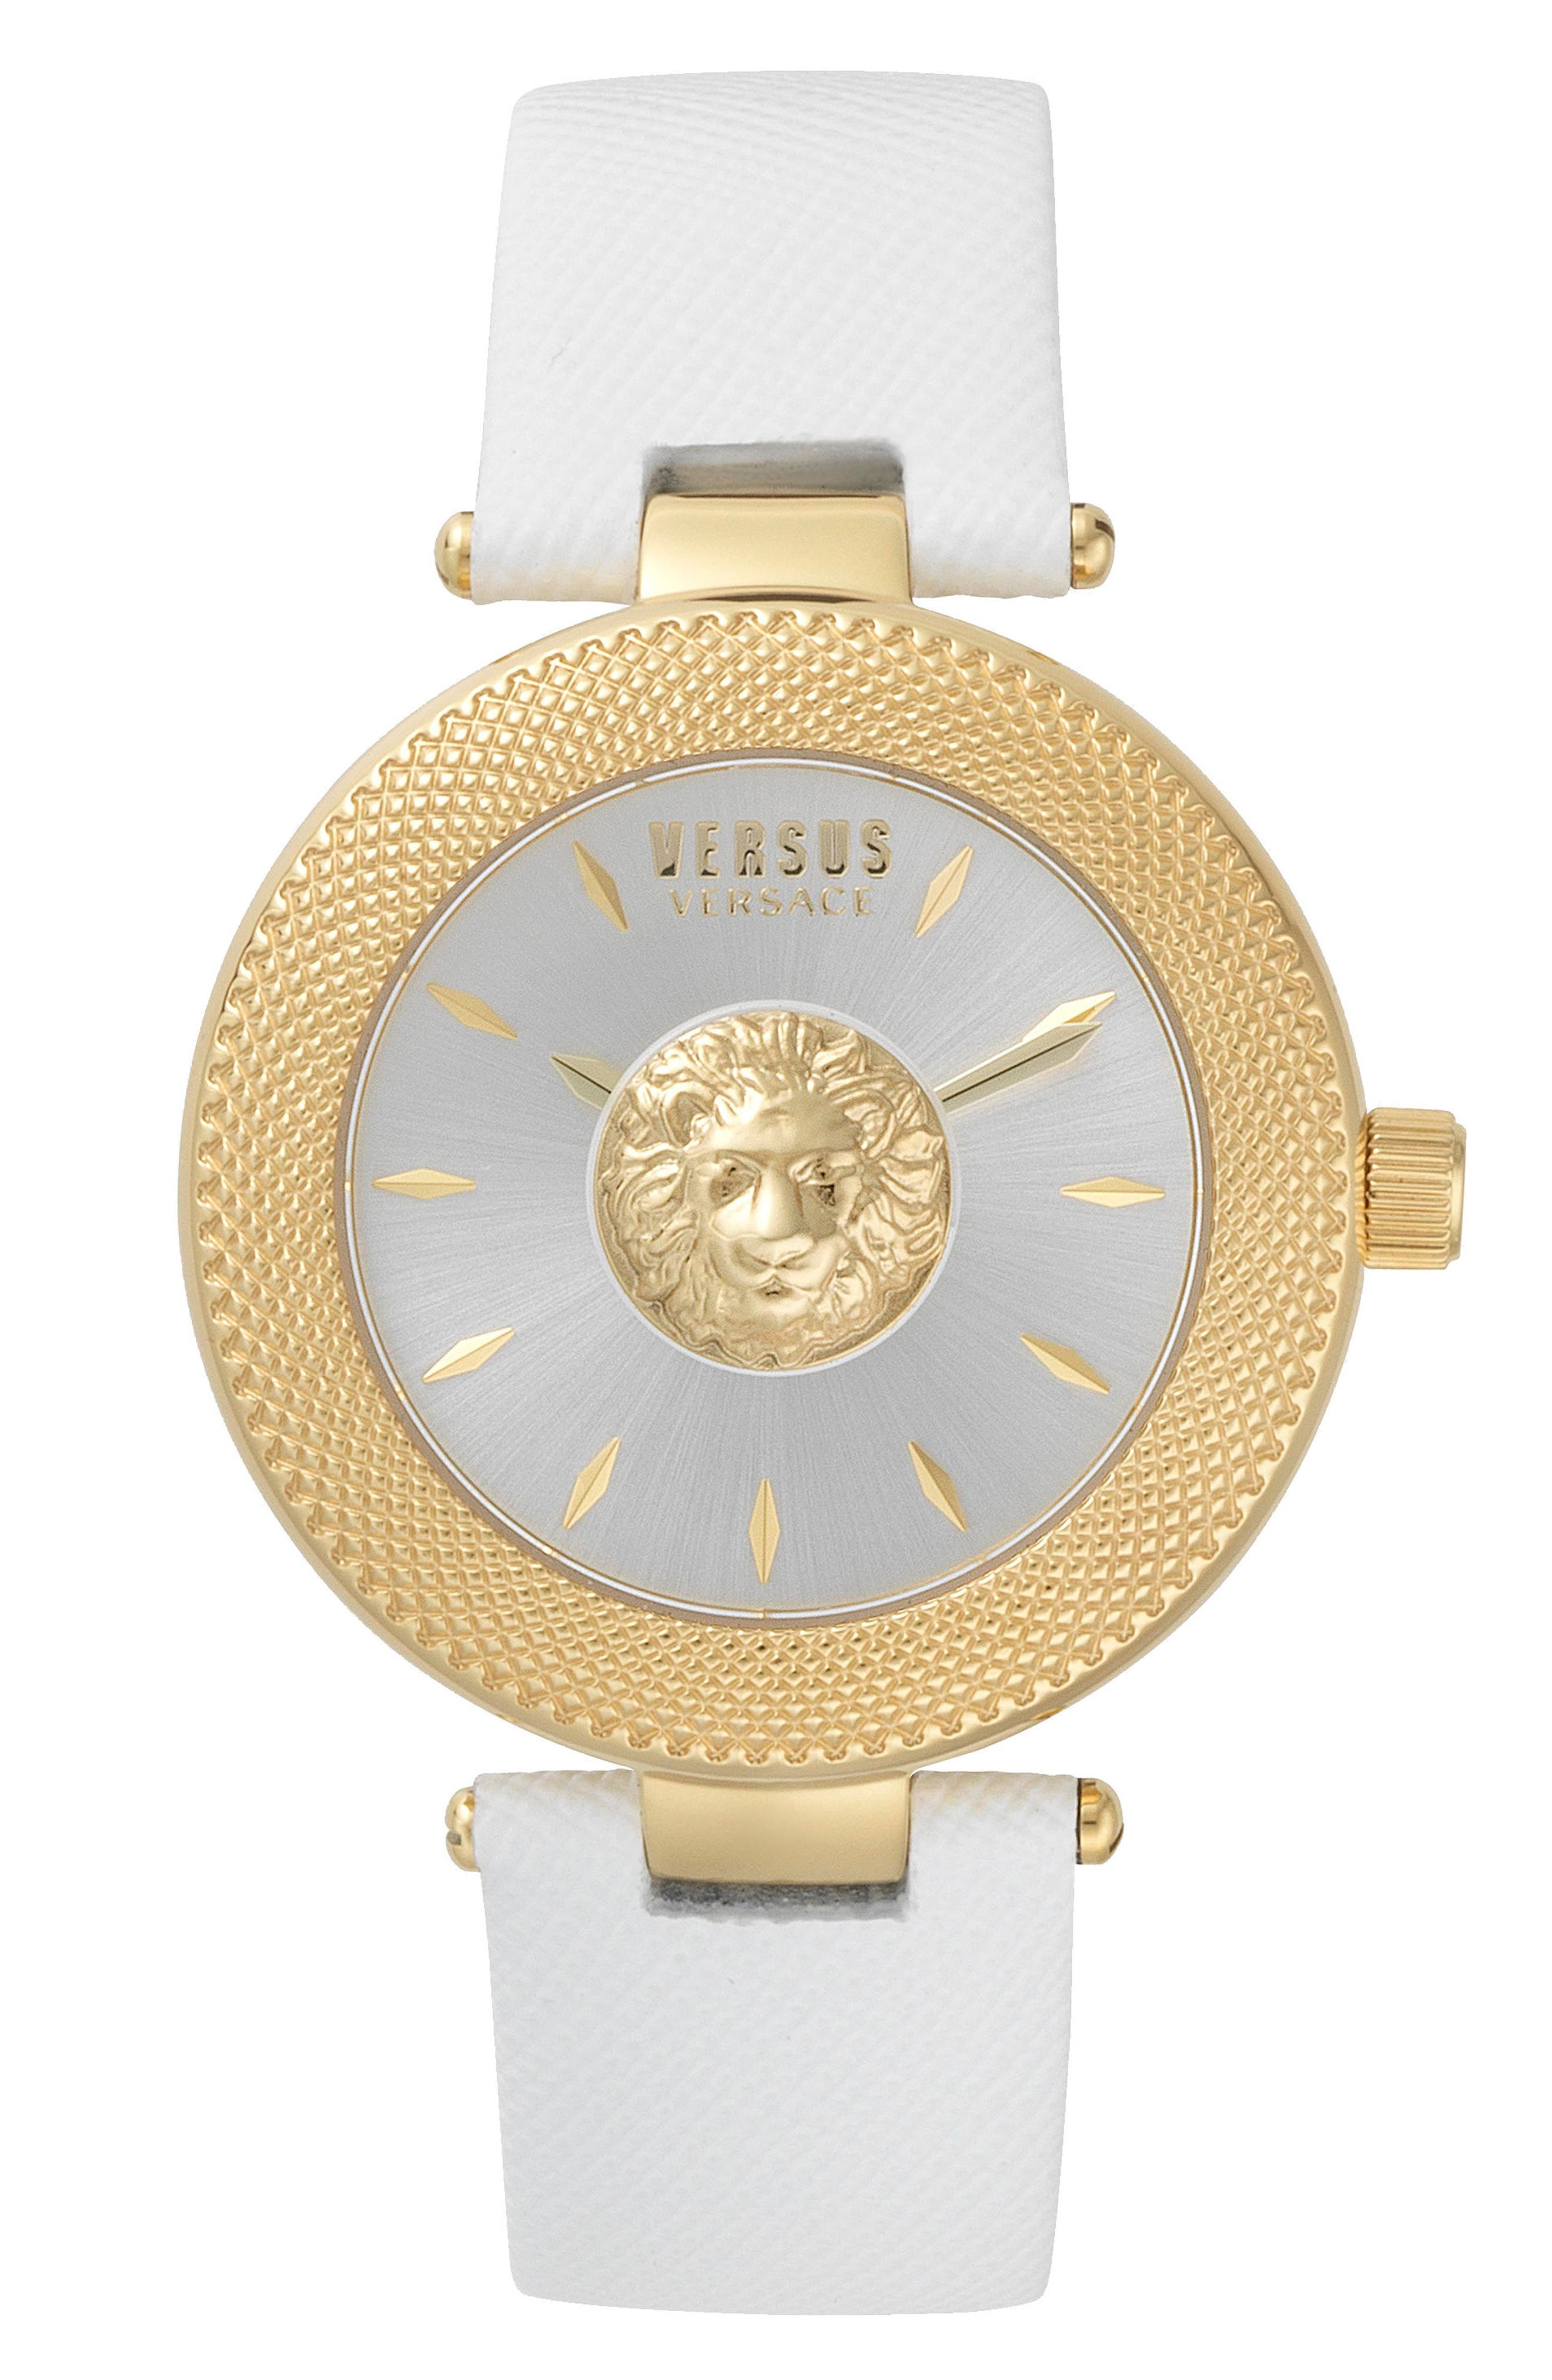 VERSUS by Versace Brick Lane Leather Strap Watch, 40mm,                             Main thumbnail 1, color,                             White/ Gold